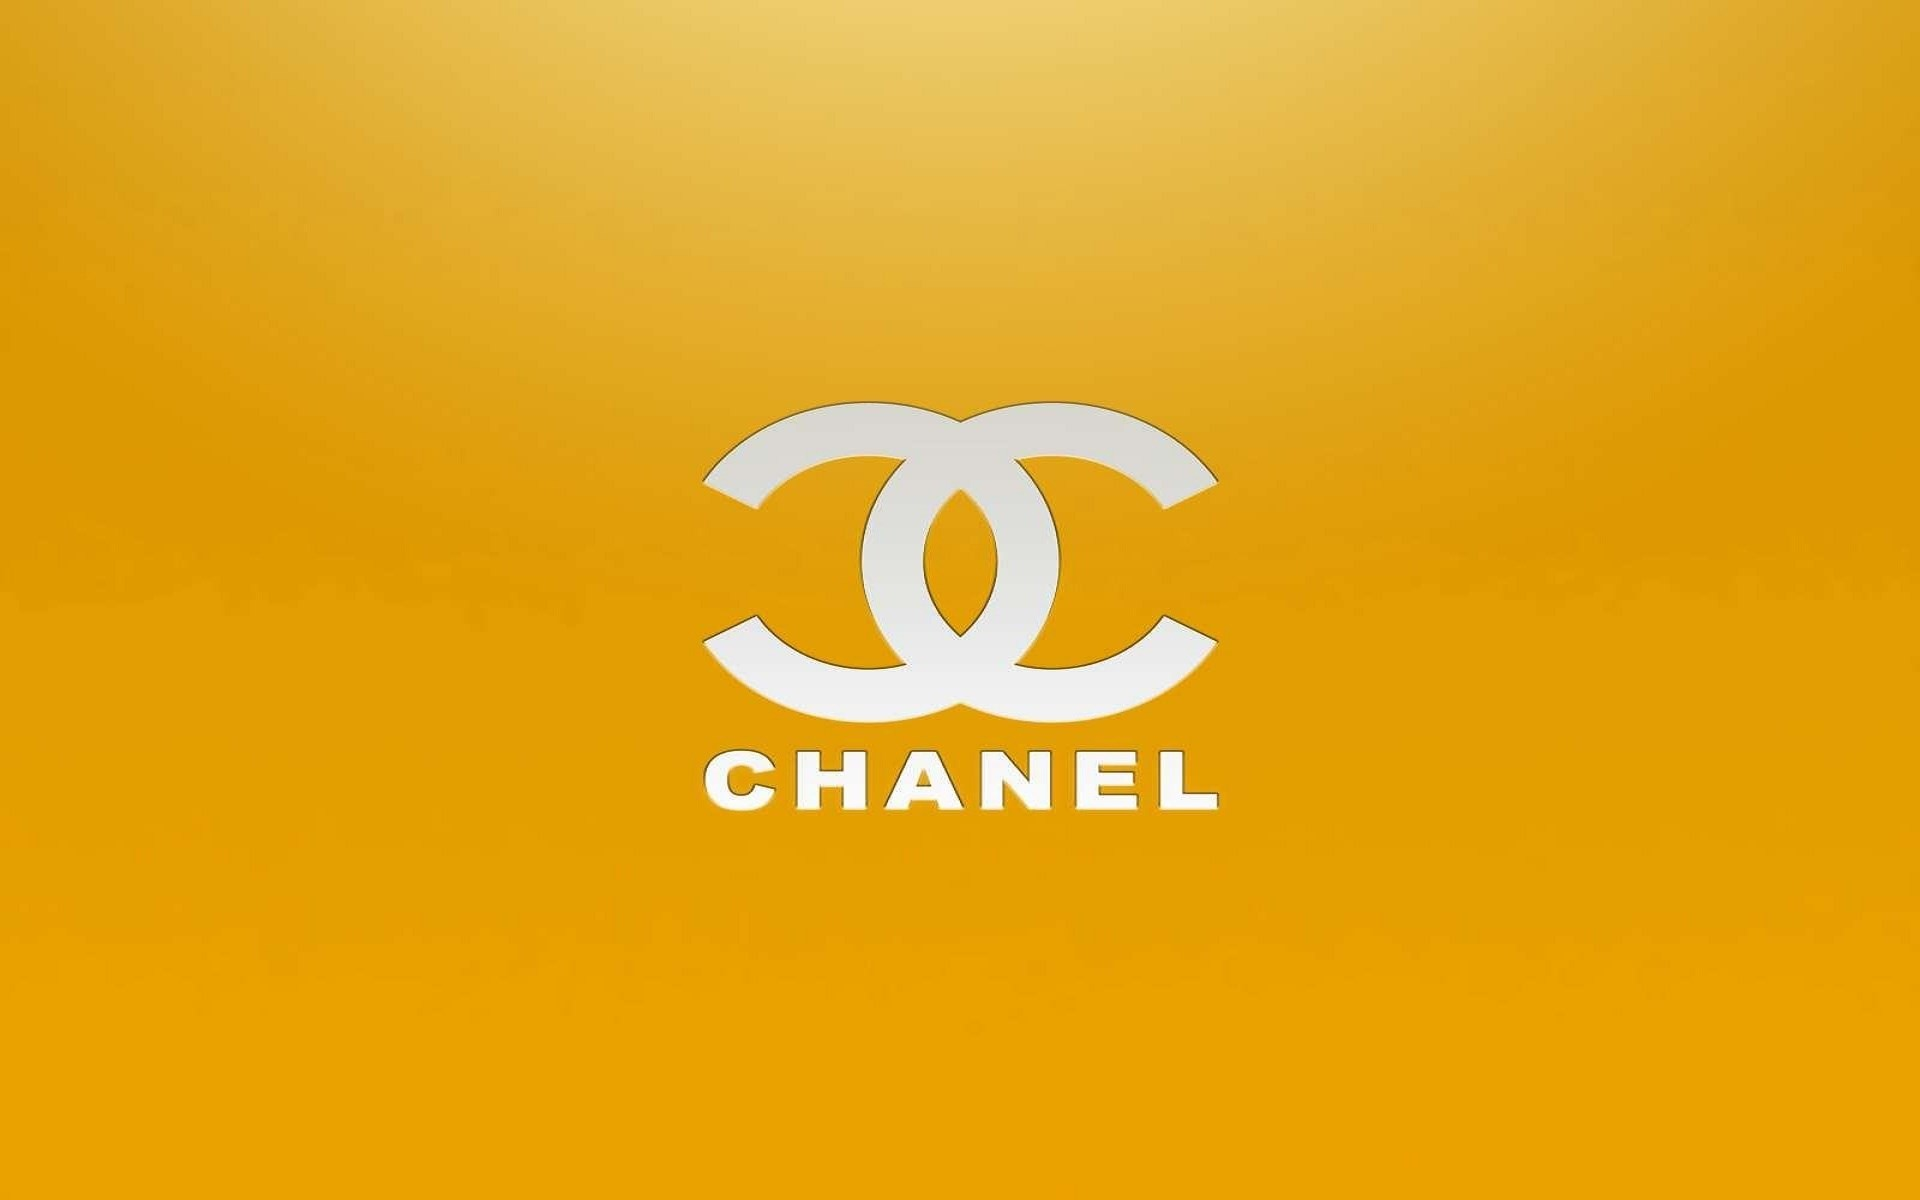 1920x1200 logo chanel wallpapers hd free download